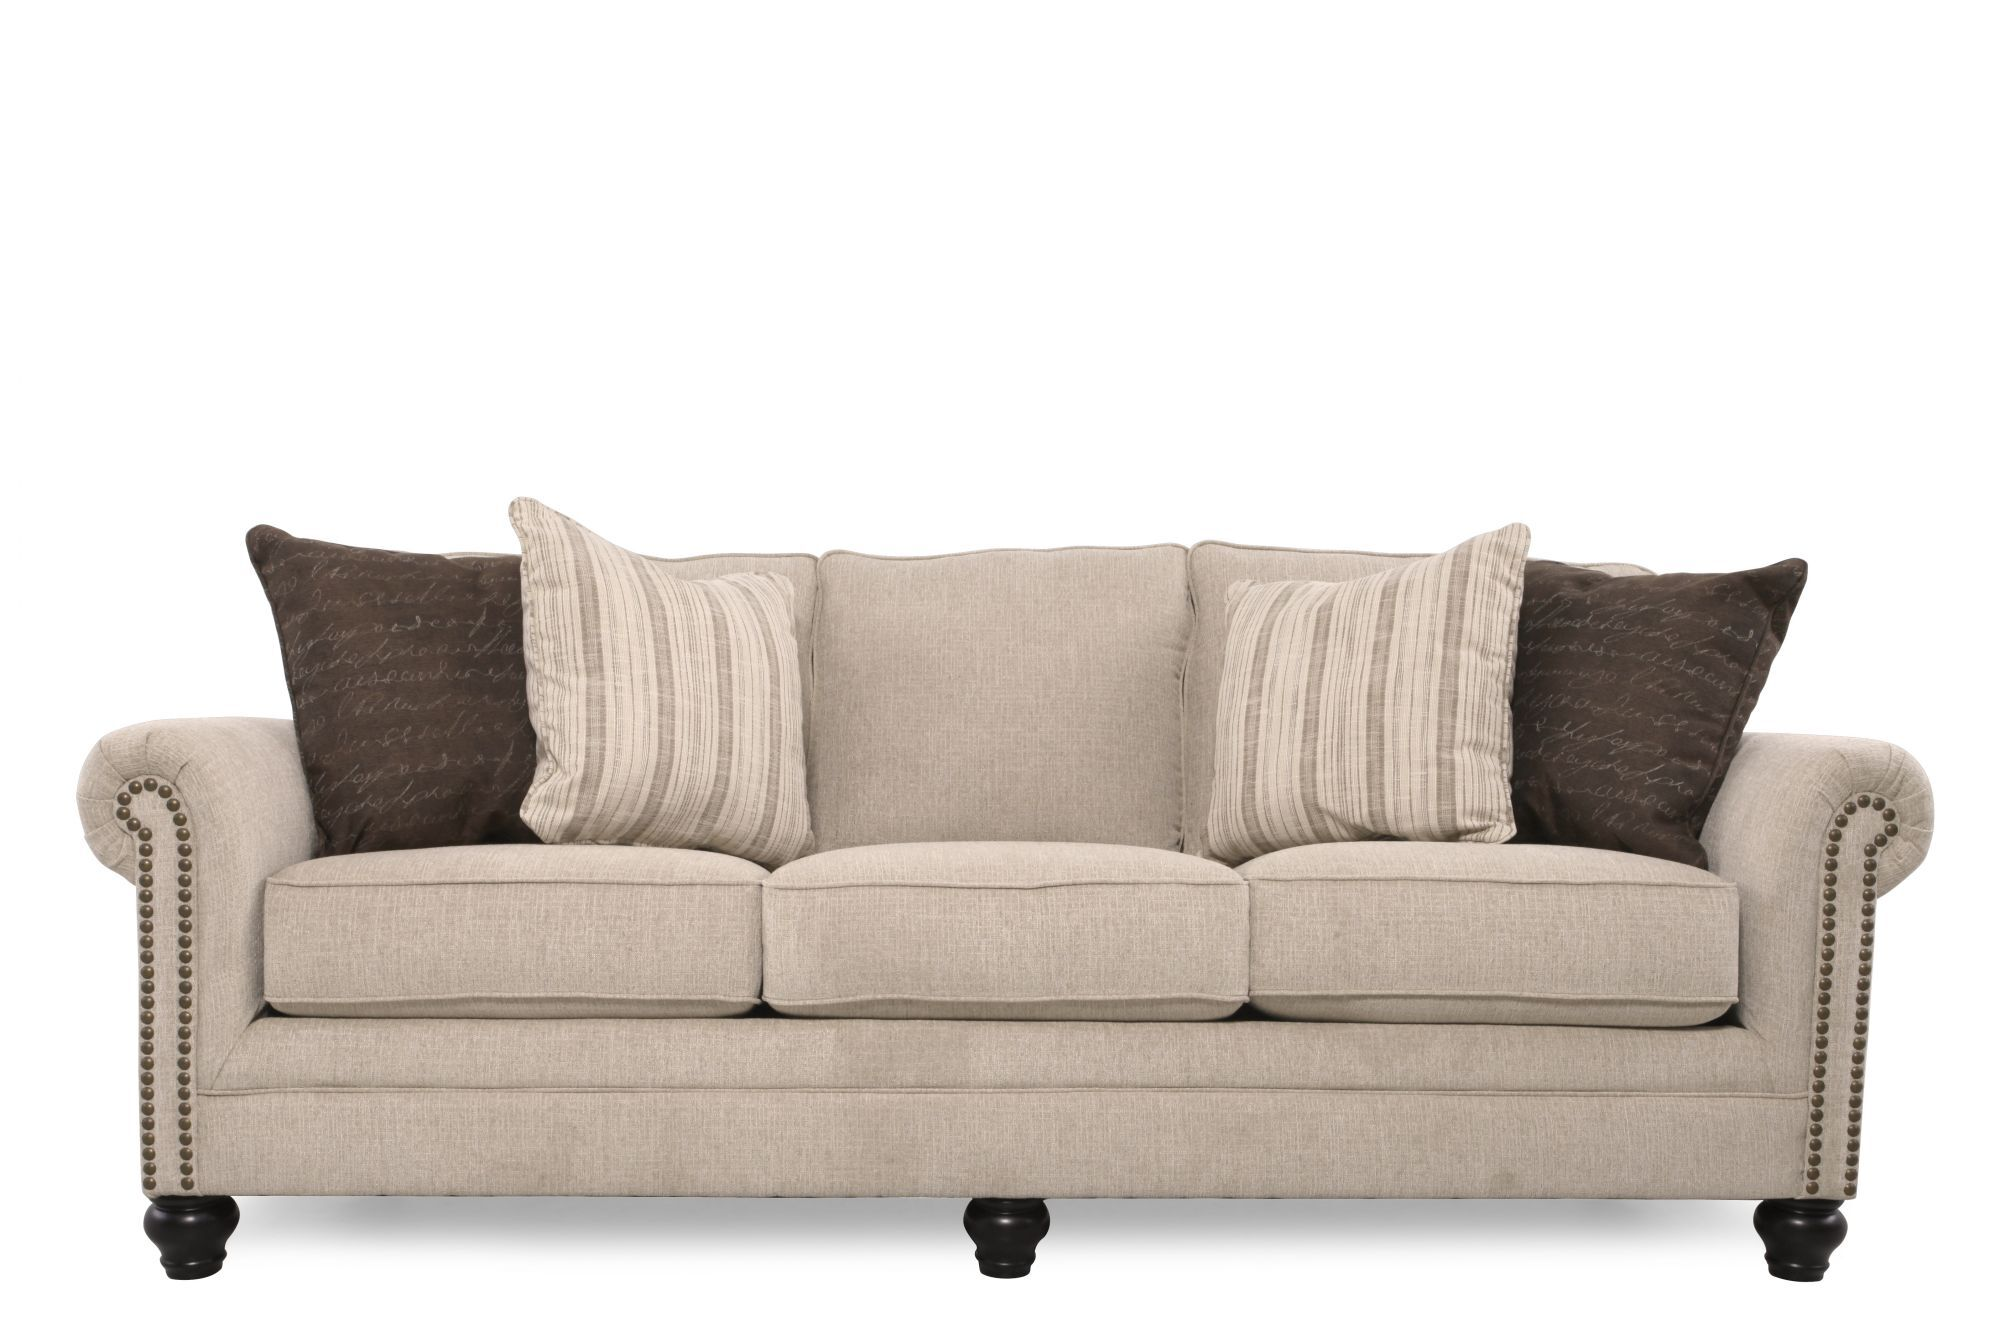 ashley furniture ballari linen sofa a in spanish milari mathis brothers